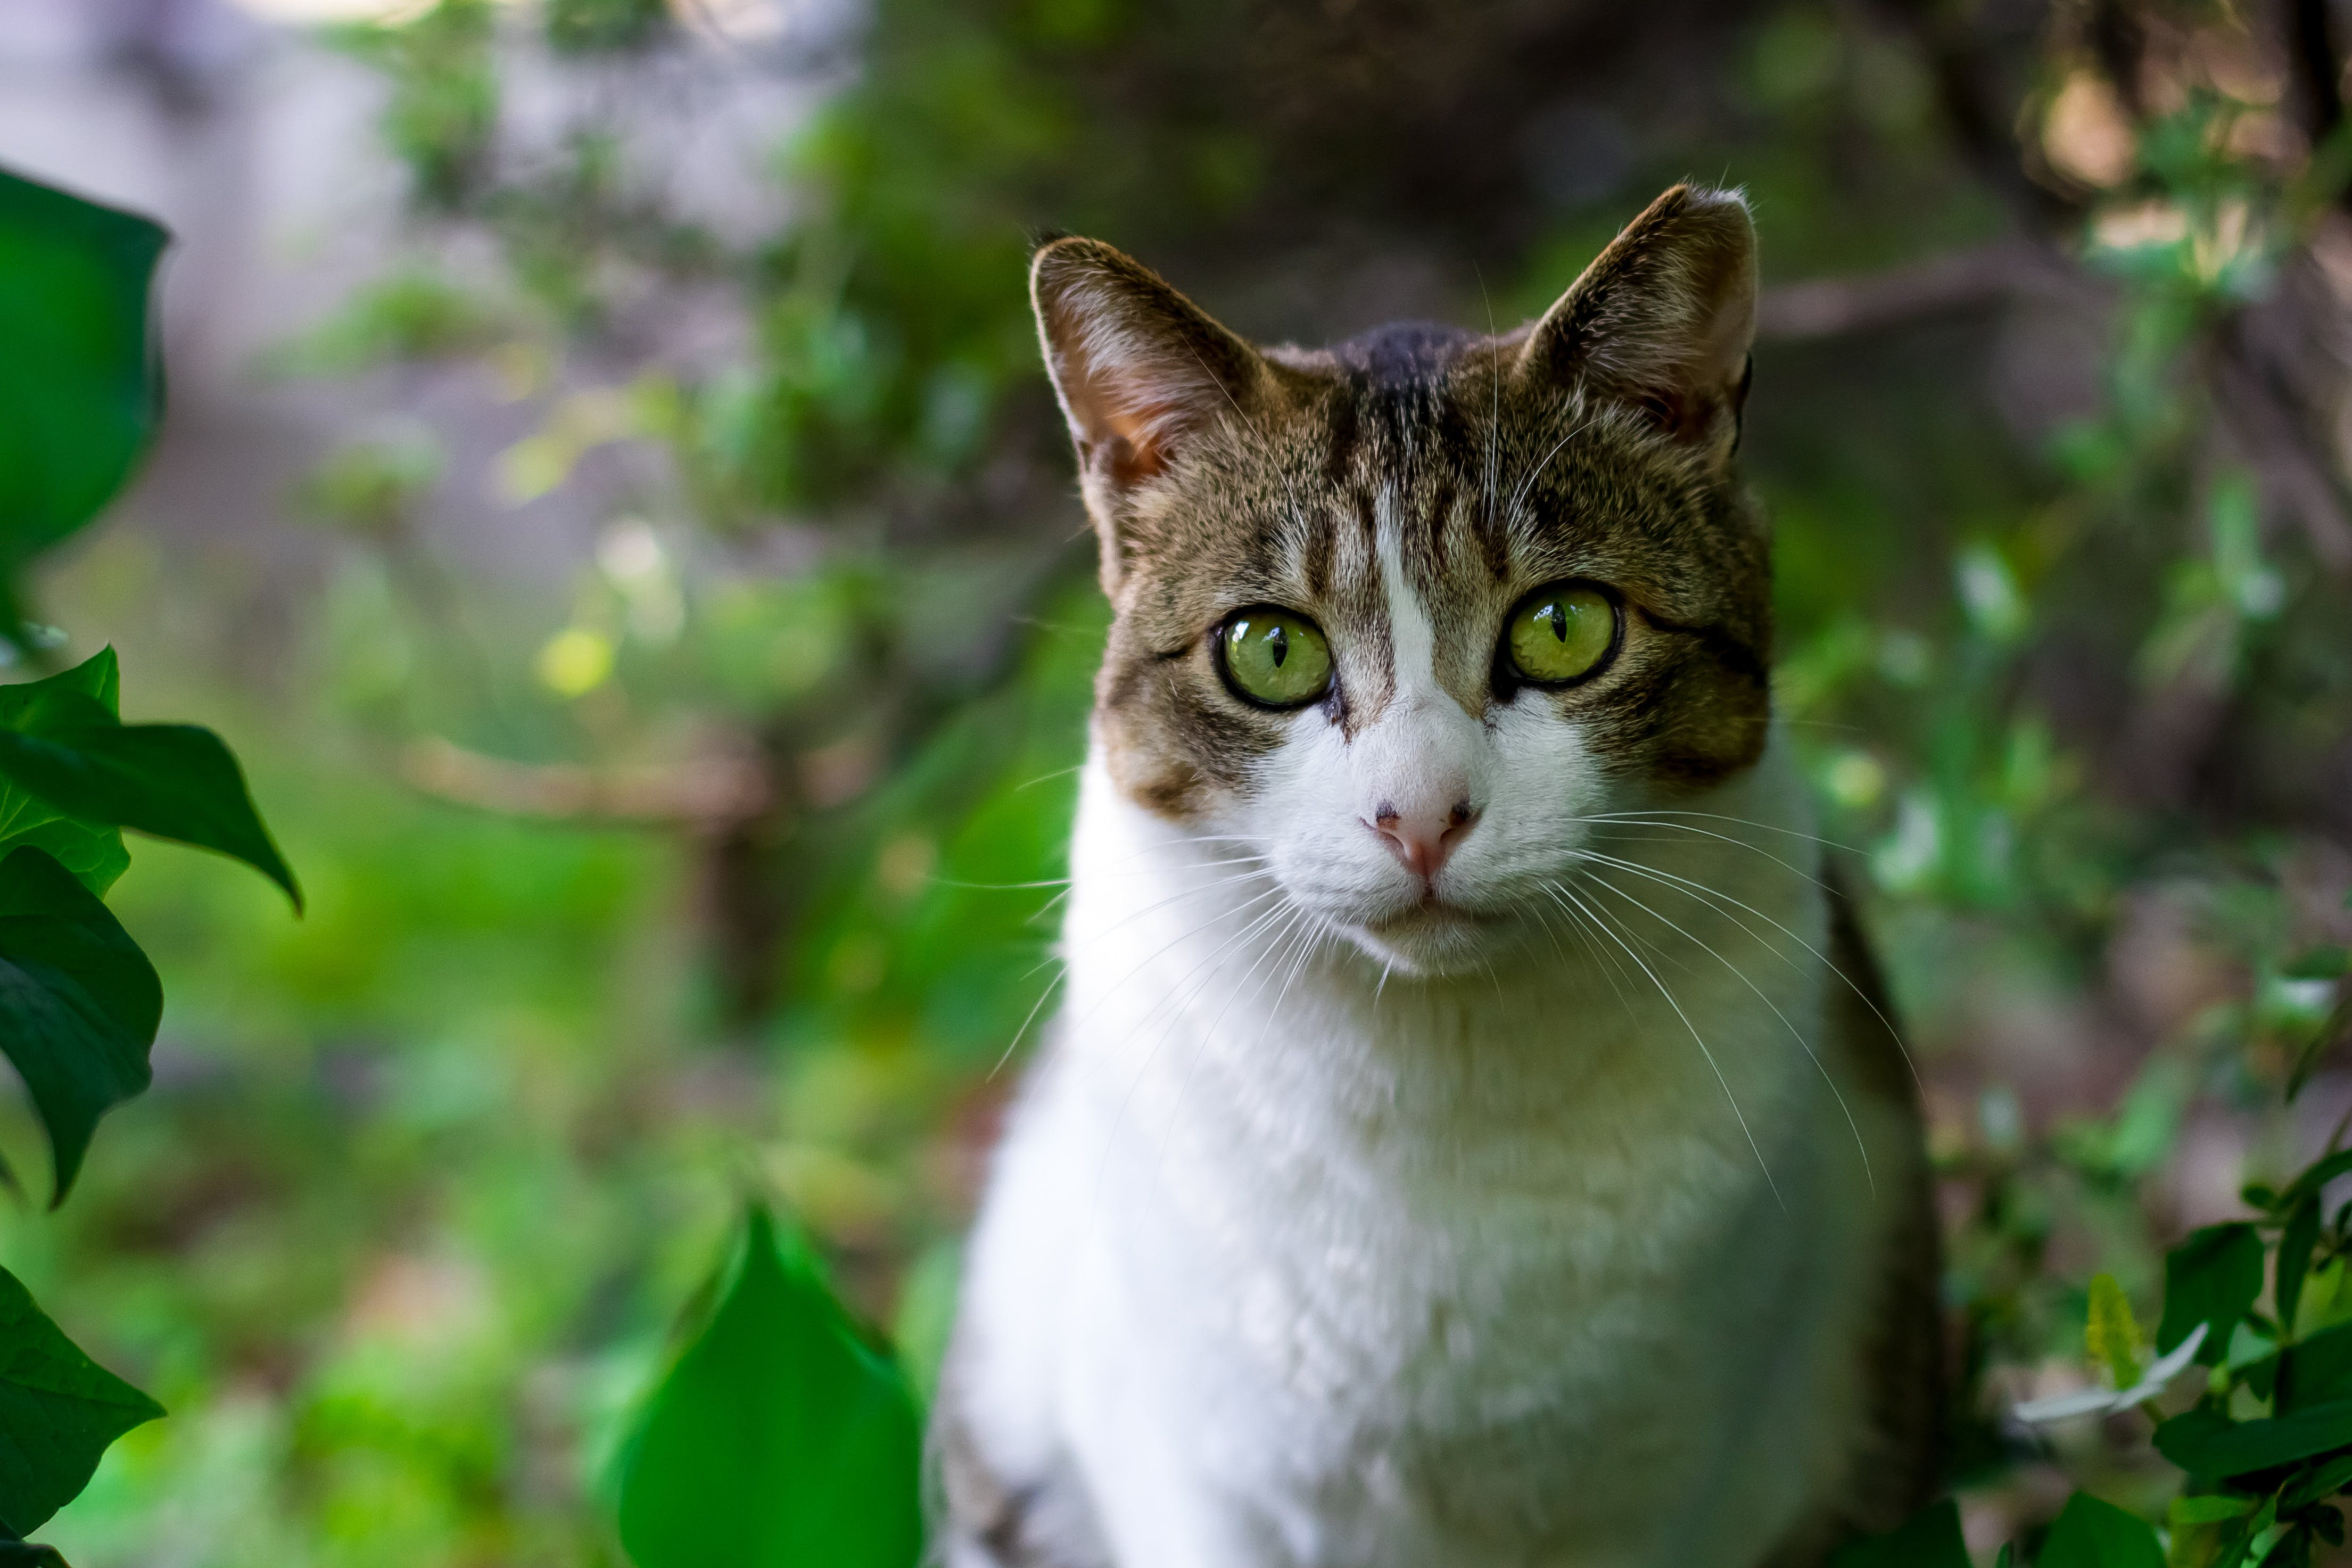 White and Brown Cat Between Plants